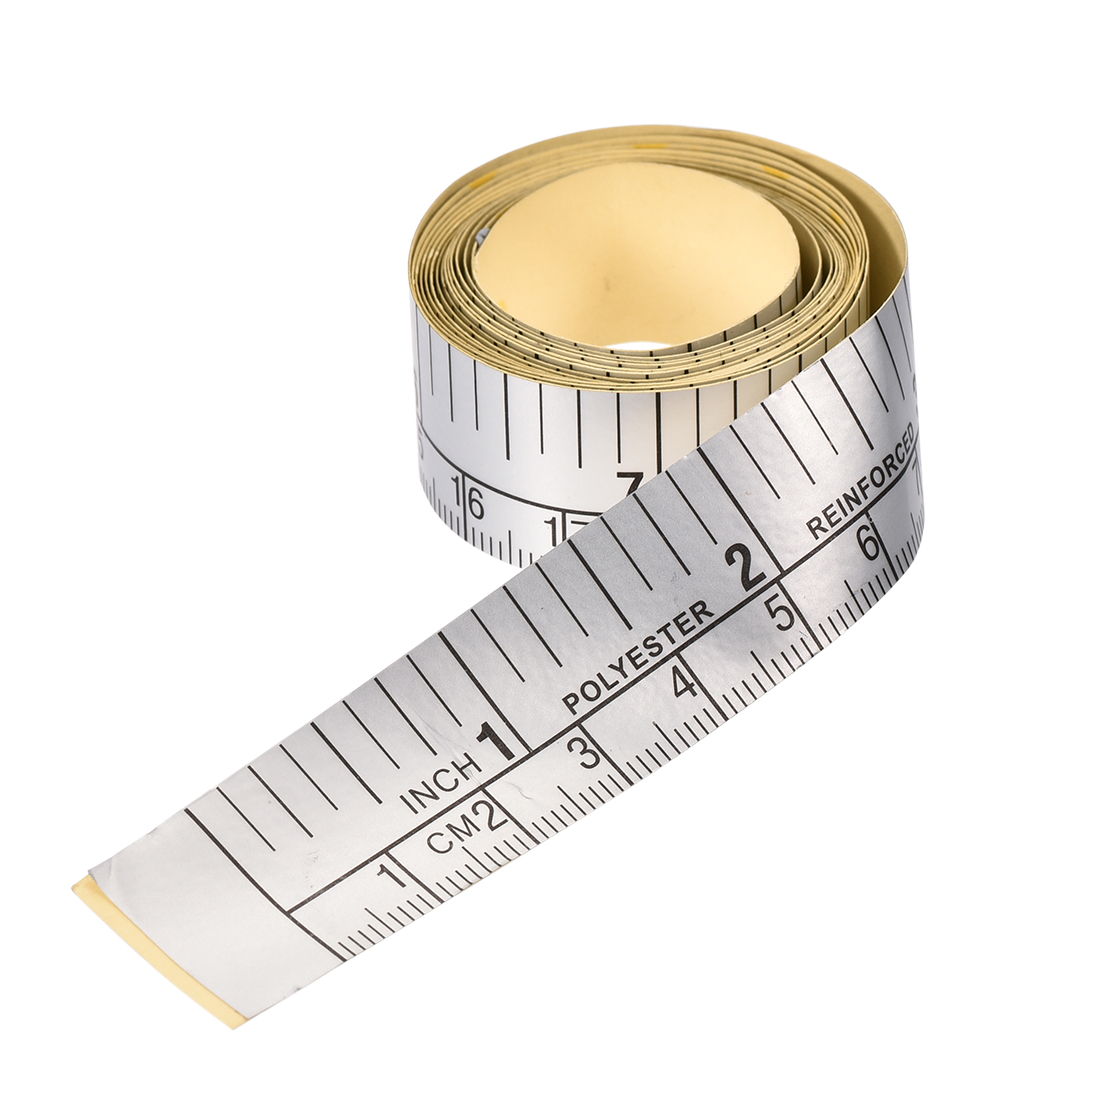 Adhesive Backed Tape Measure 152cm 60 Inch Metric